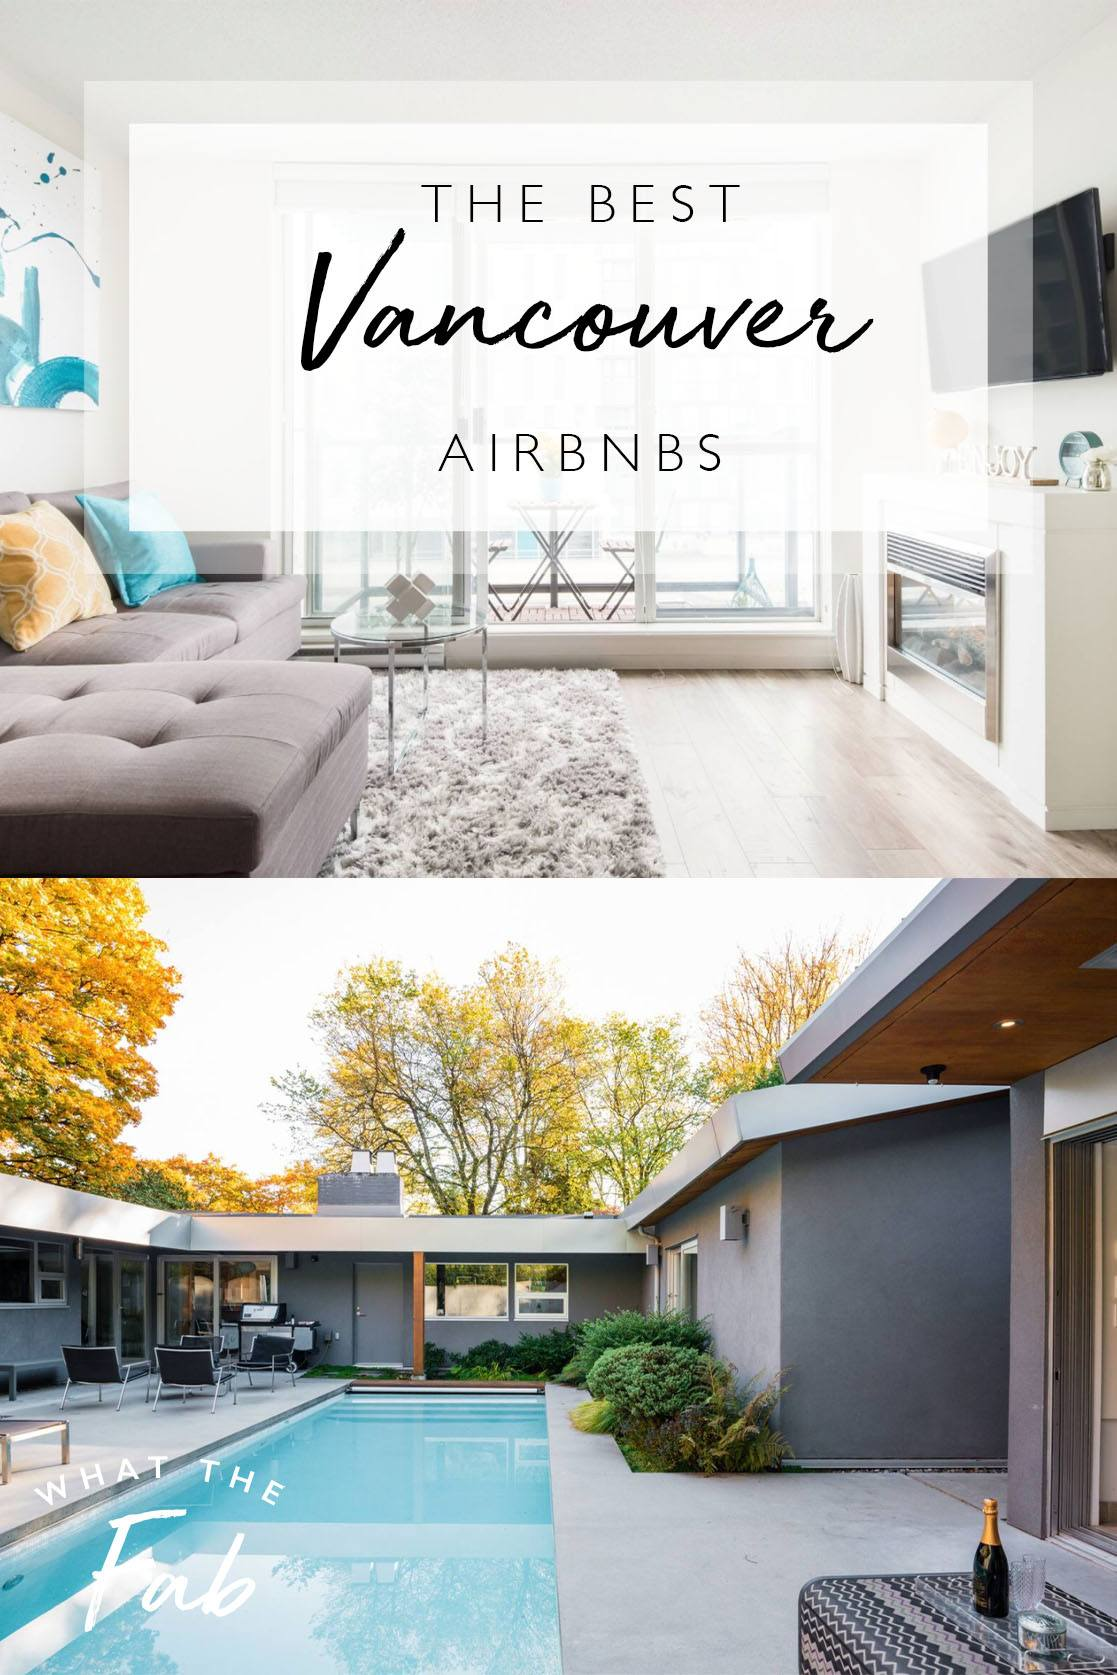 Vancouver Airbnbs, by Travel Blogger What The Fab